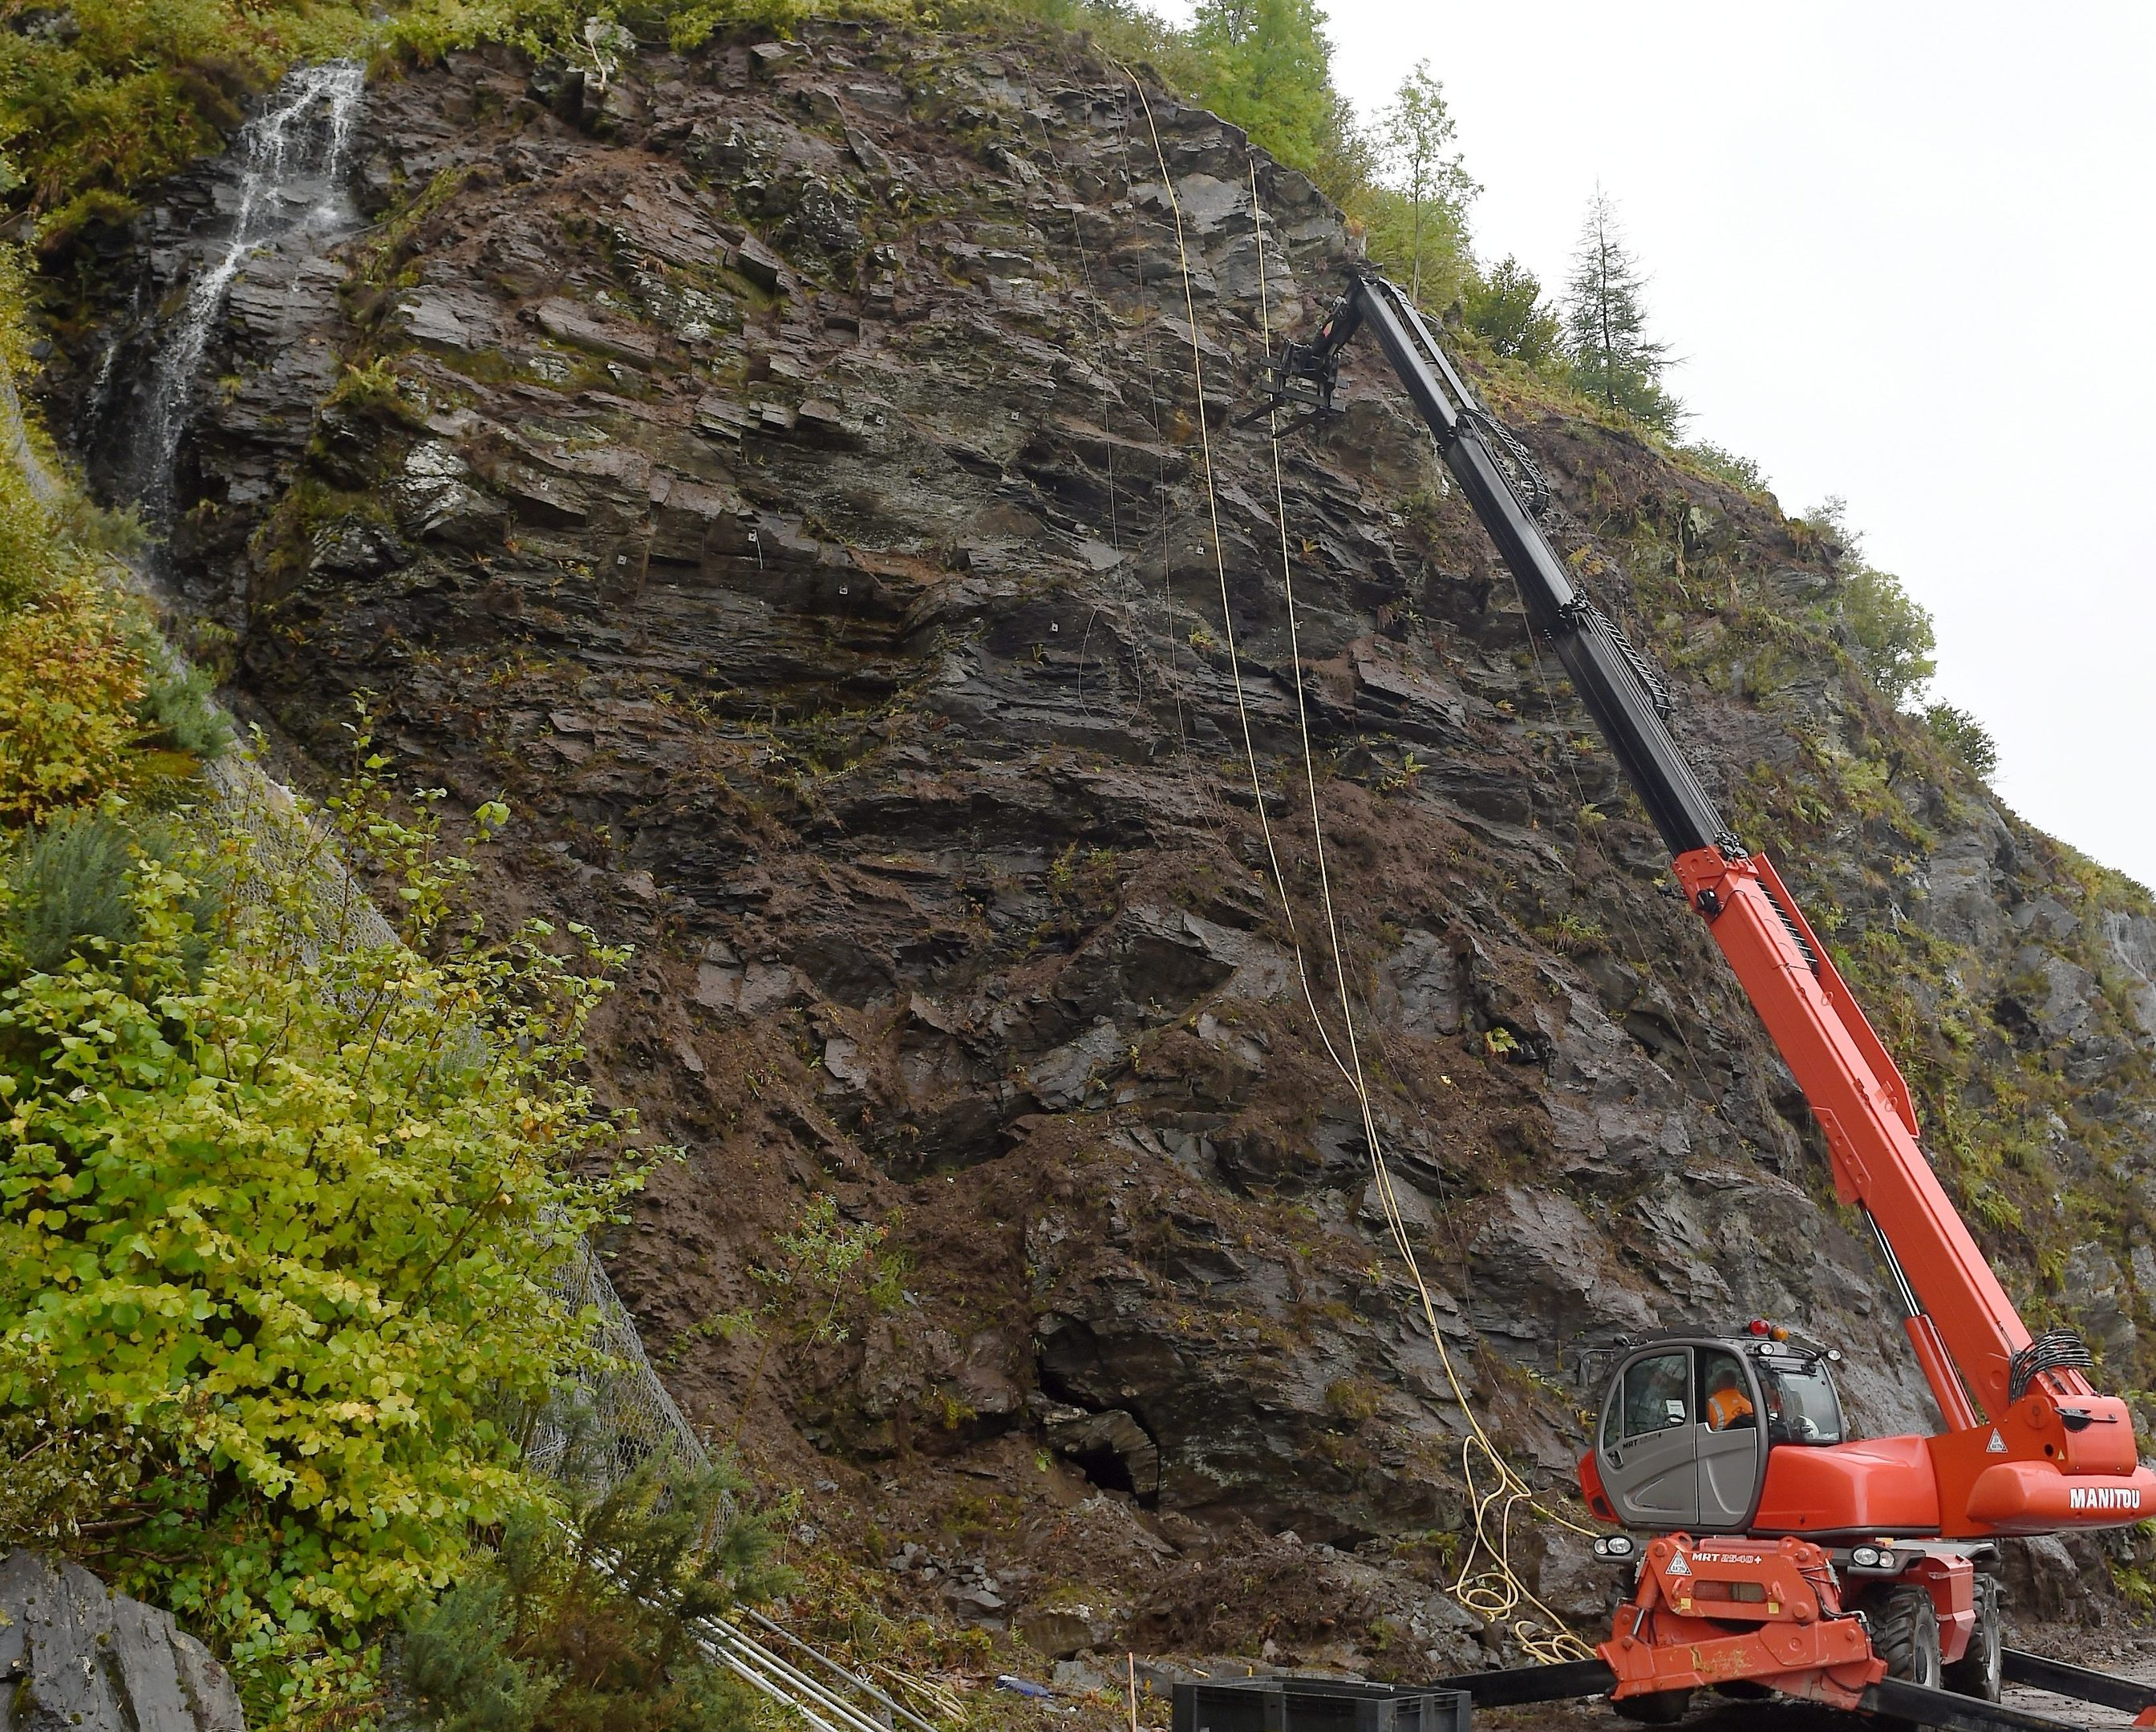 Engineers work high above the road as stabilising of rock and the installation of netting takes place above the A890 between Stromferry and Attadale.